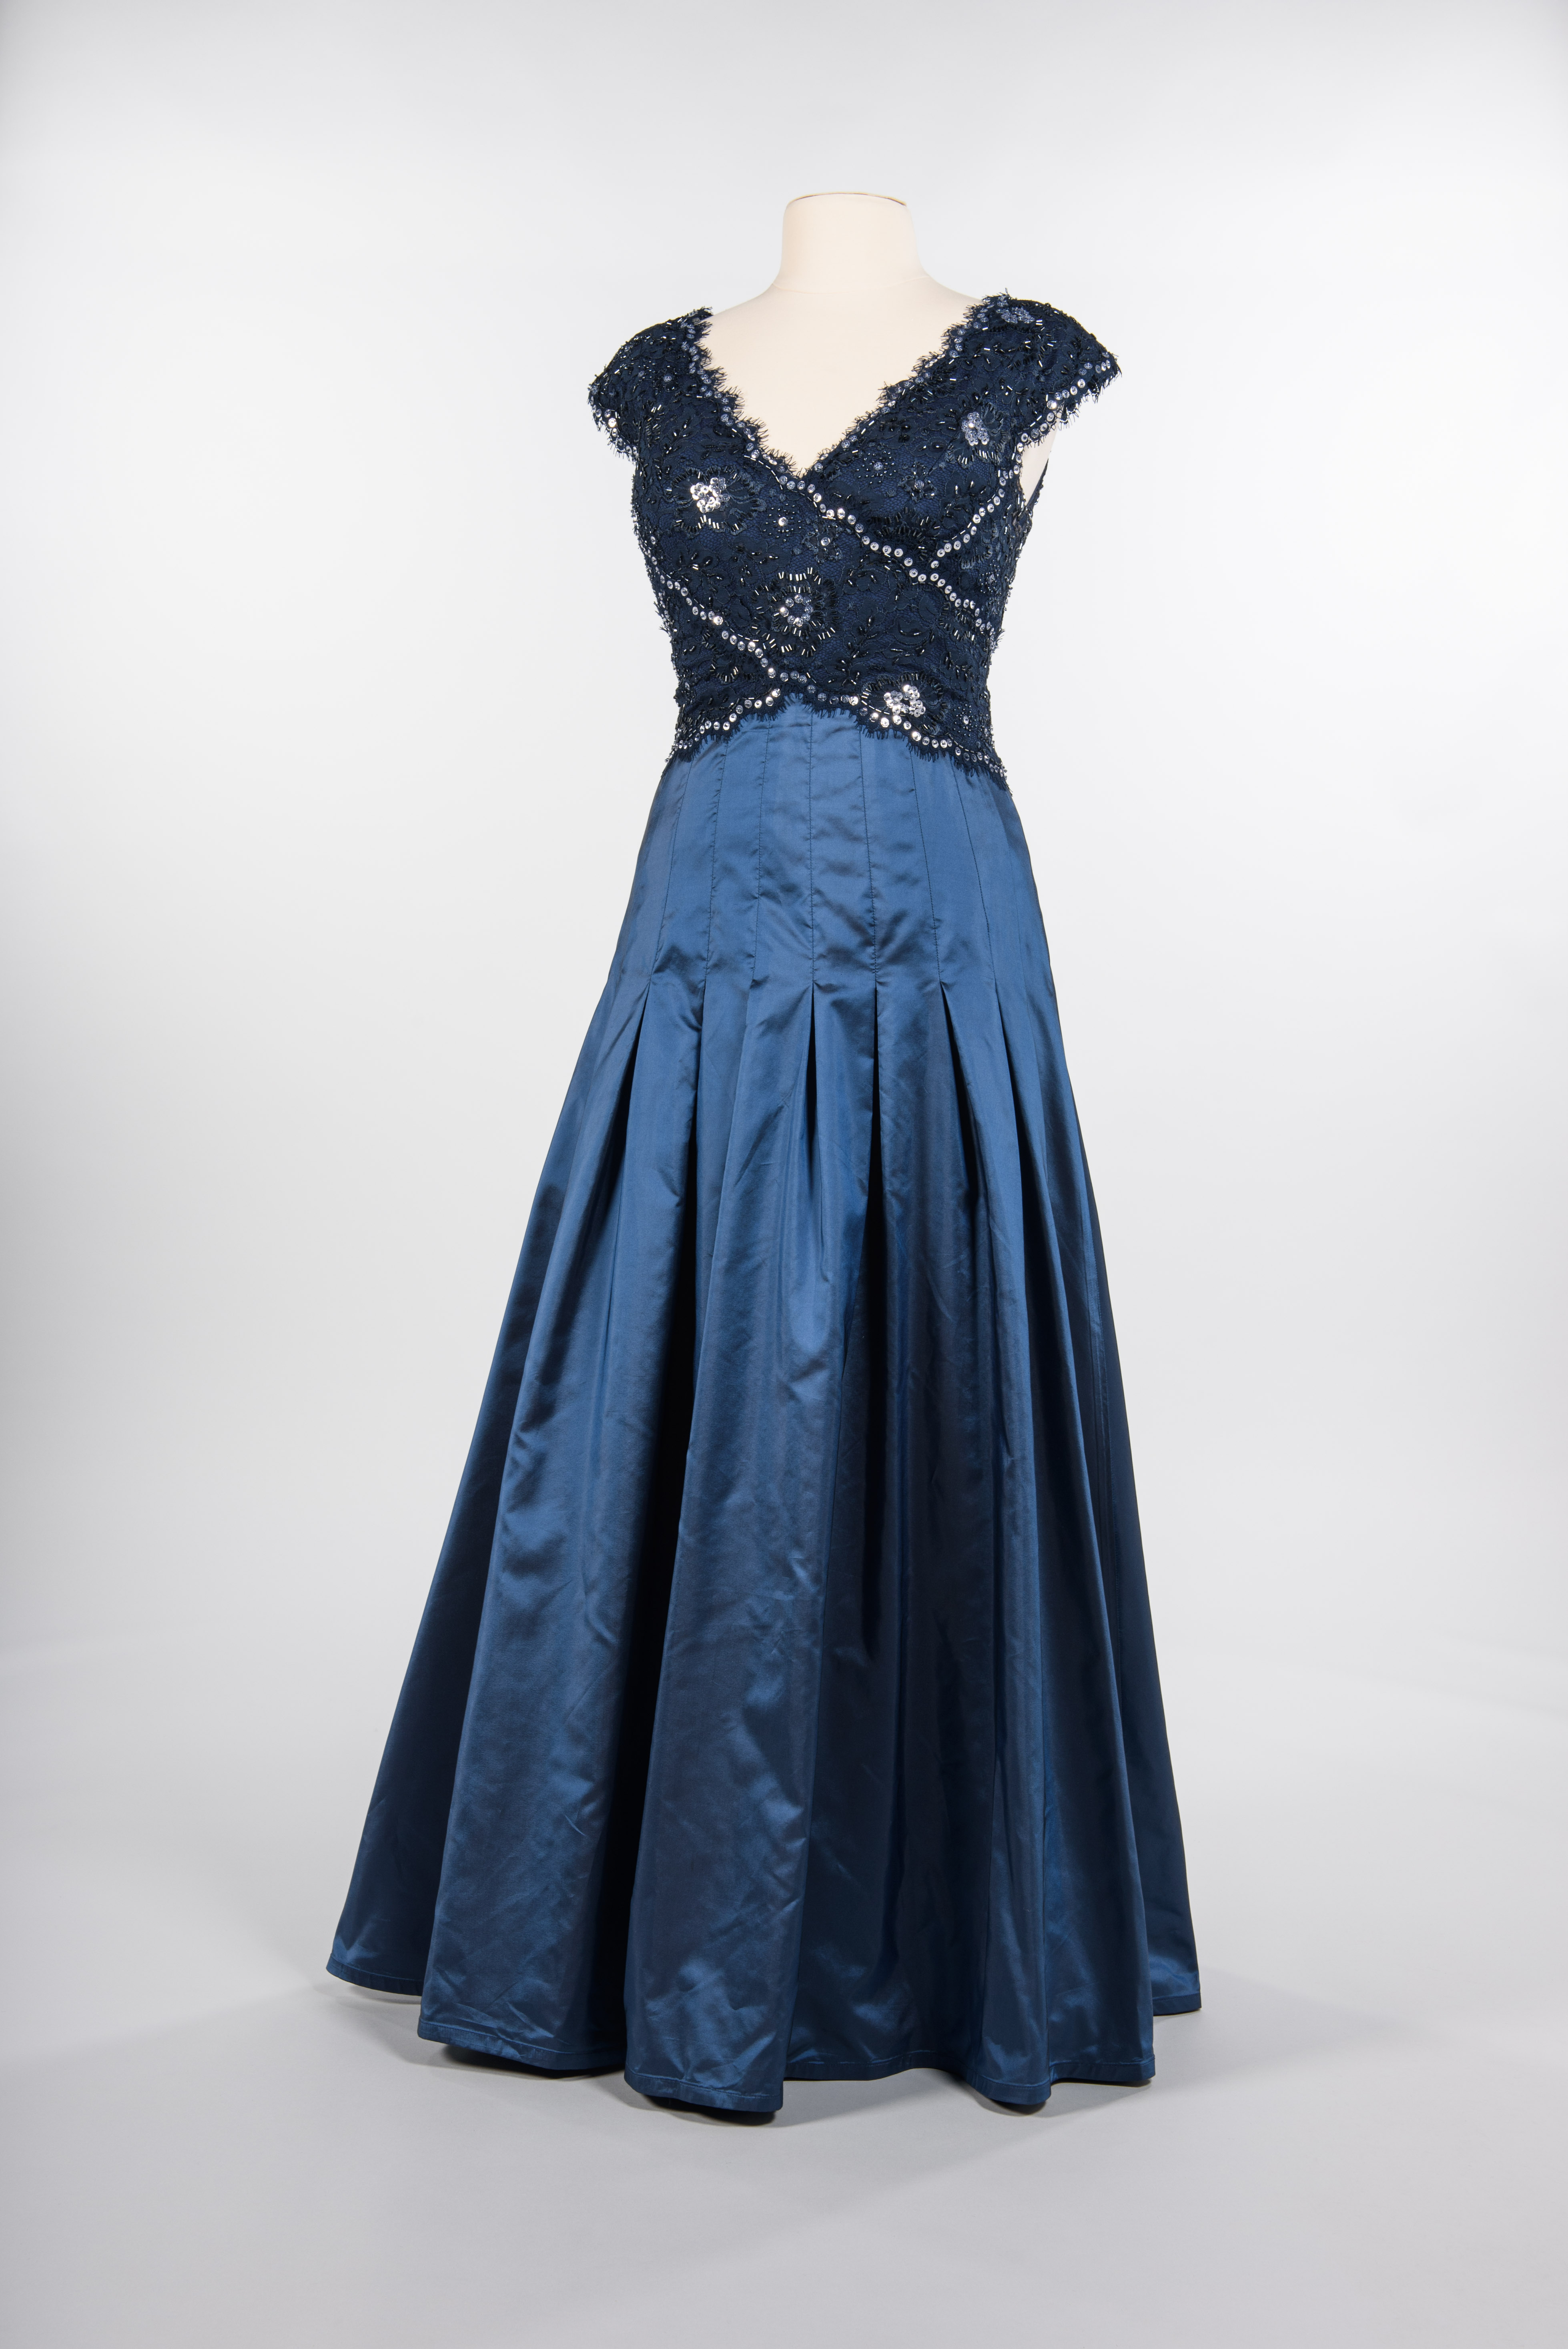 Evening gown with lace bodice, 2010. Tadashi Shoji, New York, maker. Nordstrom, retailer. Gift of Jean Chamberlin copyright MOHAI Collection.{ }